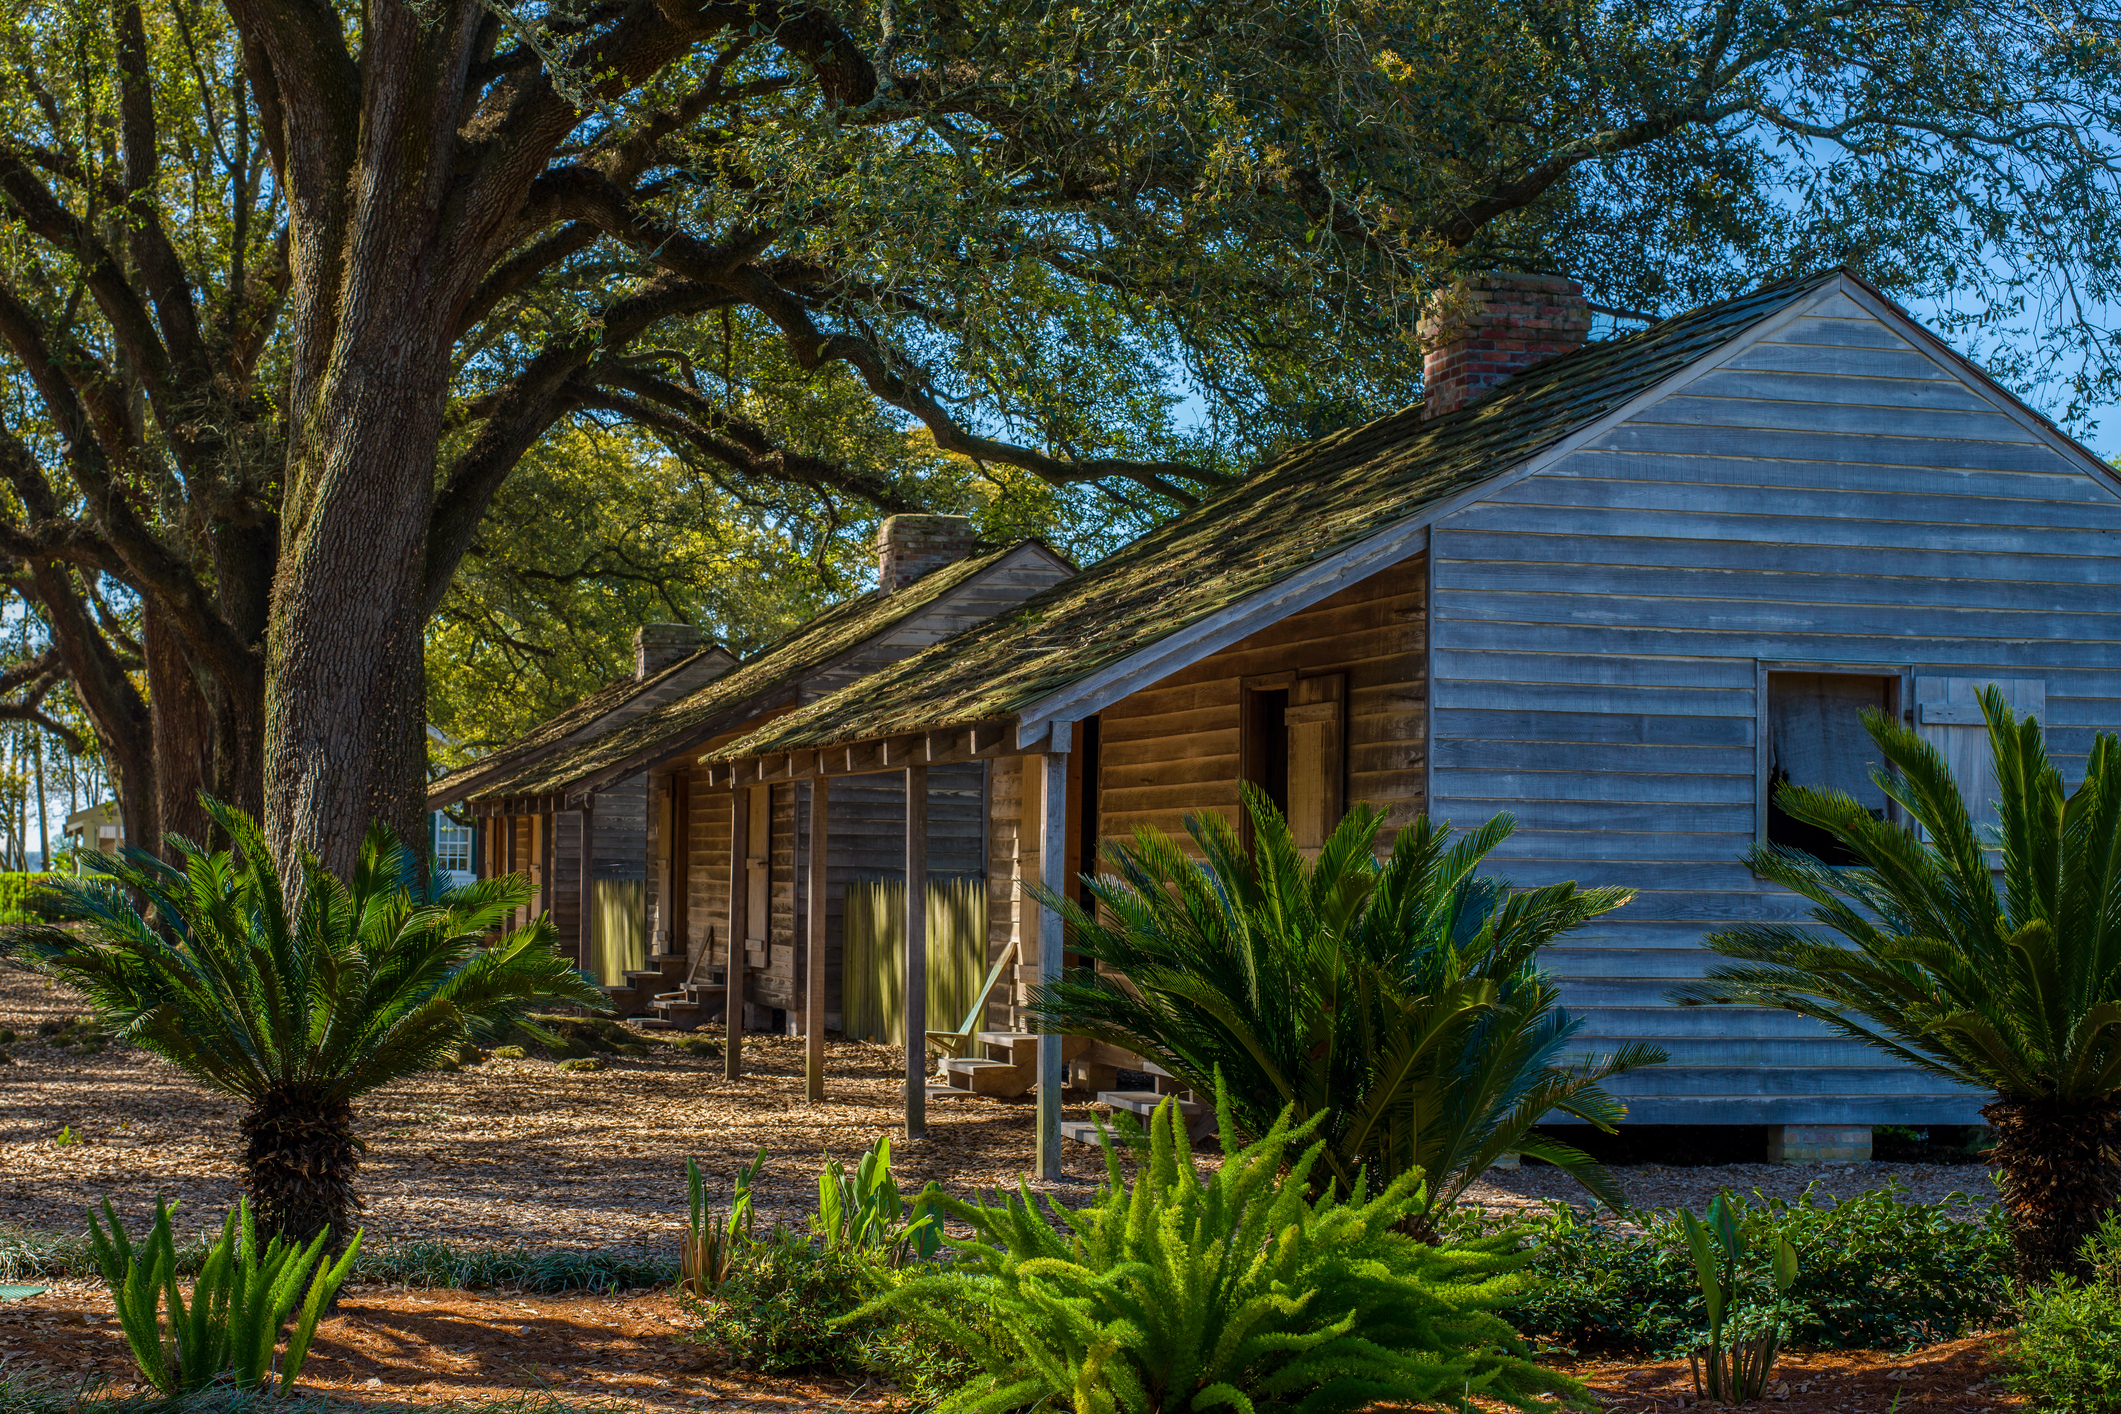 Preserved Historical Oak Alley Slave Cabins (Getty Images)